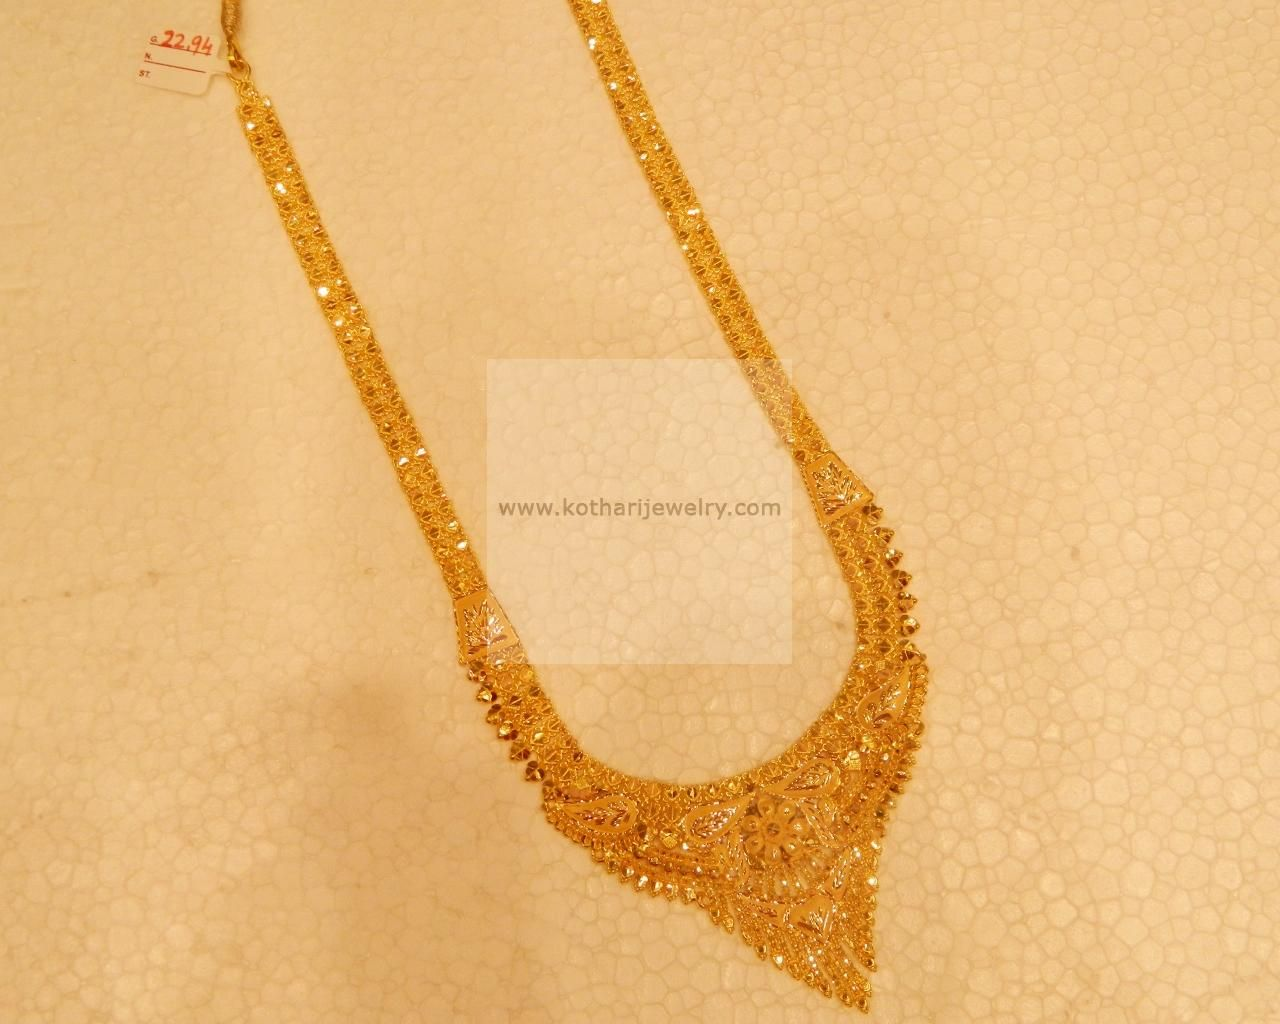 Necklaces harams gold jewellery necklaces harams nk22942294 20 at usd